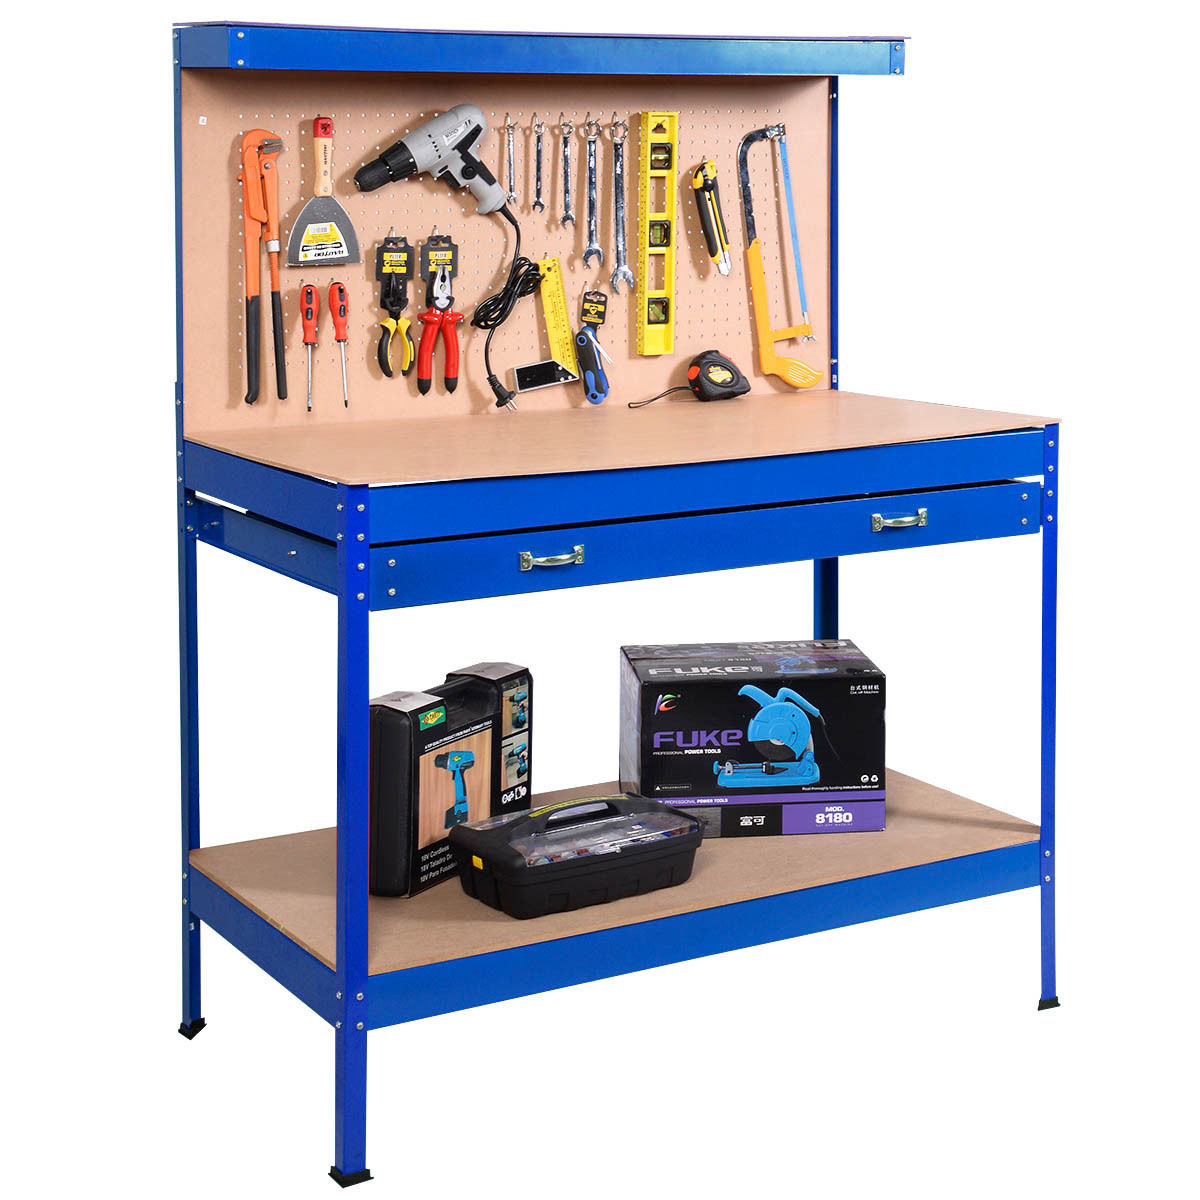 Costway Work Bench Tool Storage Steel Tool Workshop Table W/ Drawer and Peg Board Blue